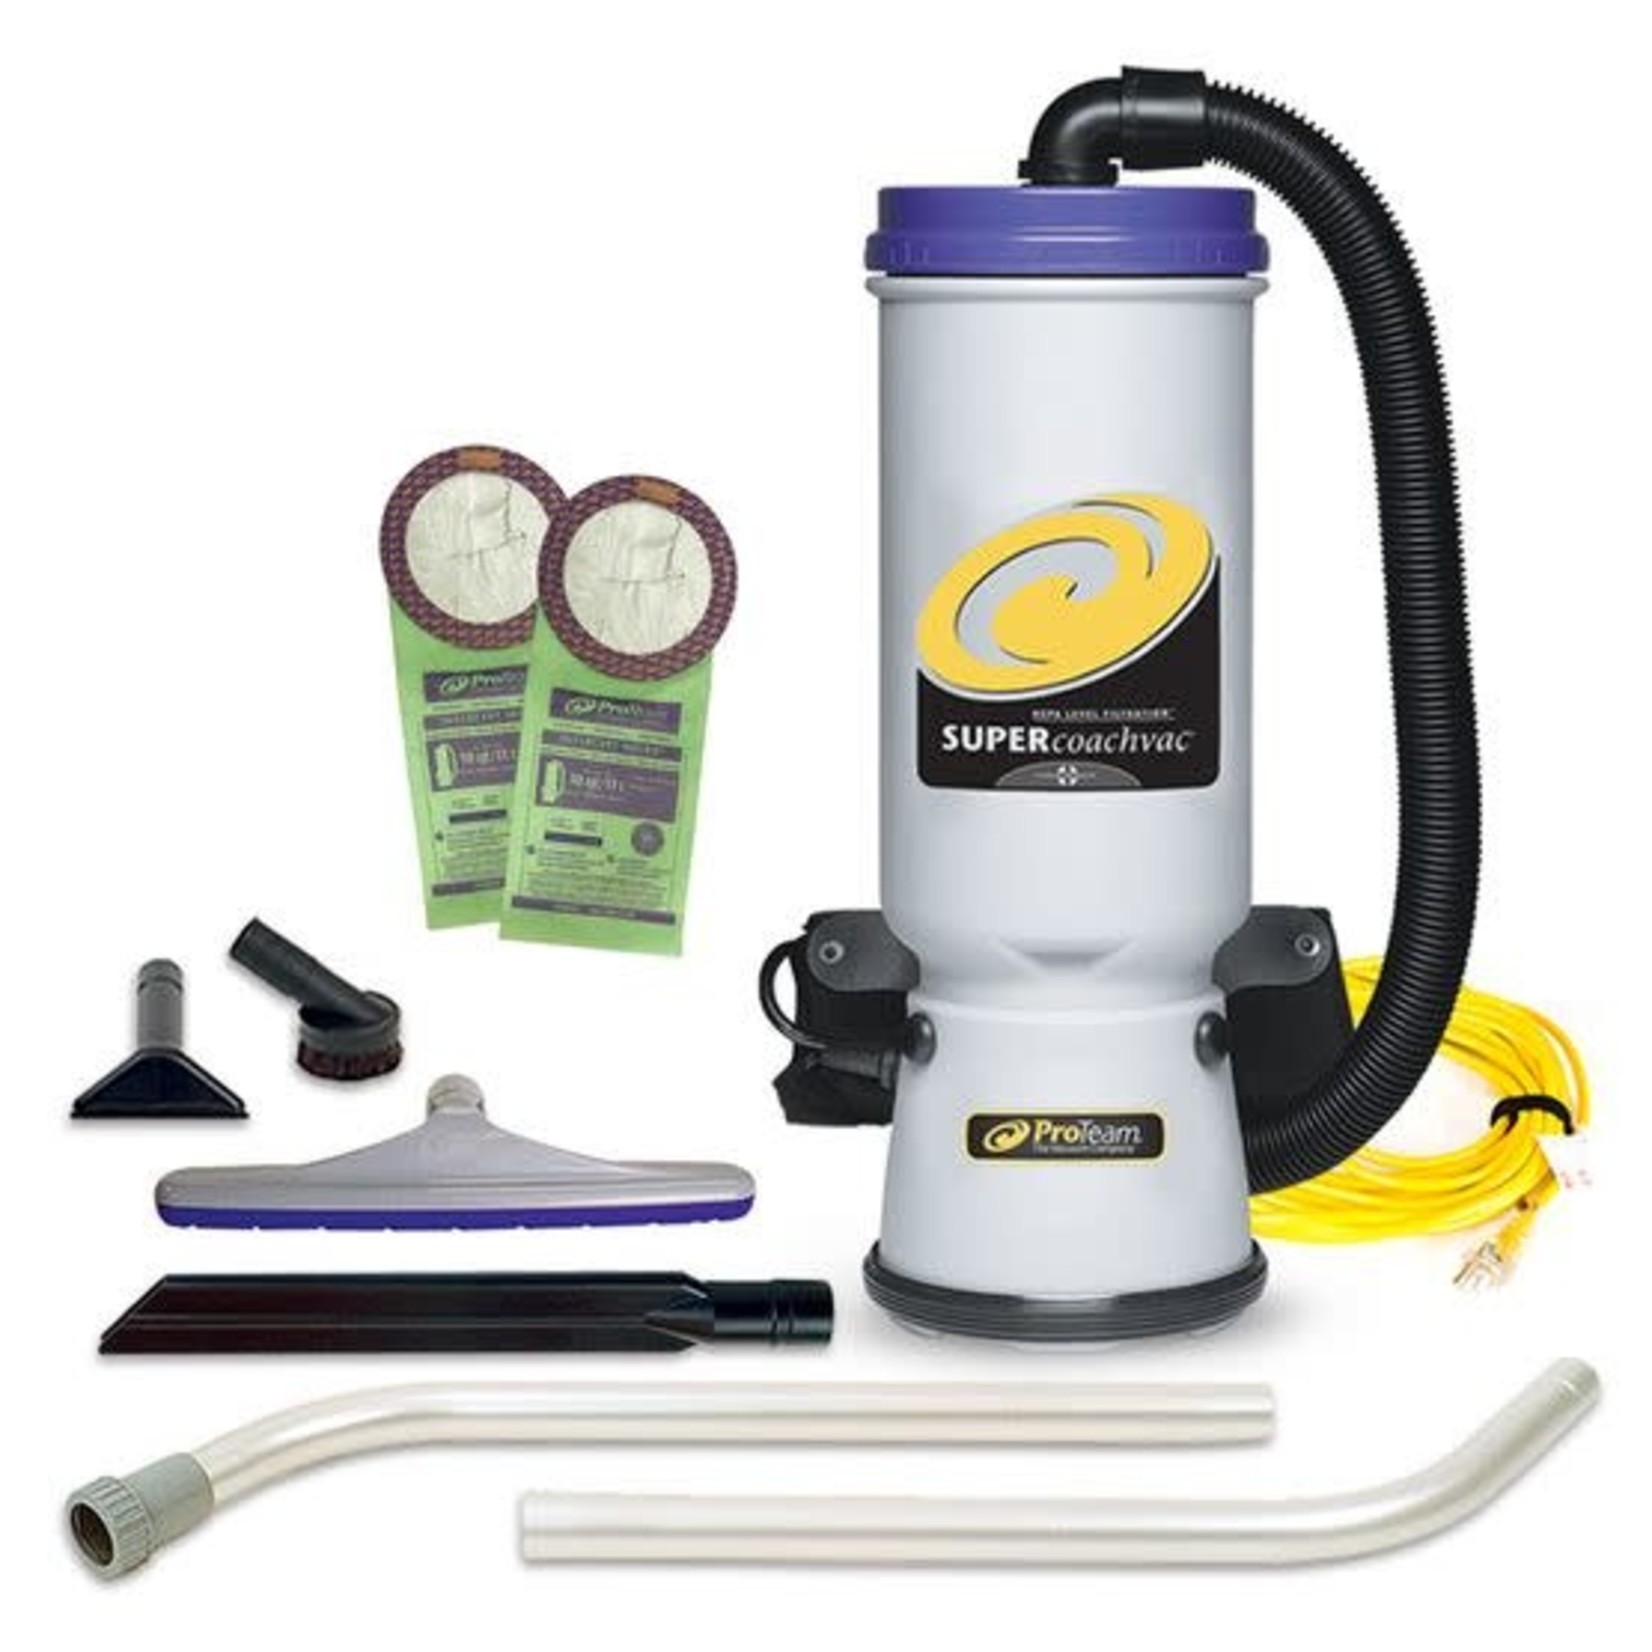 ProTeam Commercial Vacuums Super CoachVac 10 qt. Backpack Vacuum w/ Xover Multi-Surface Two-Piece Wand Tool Kit